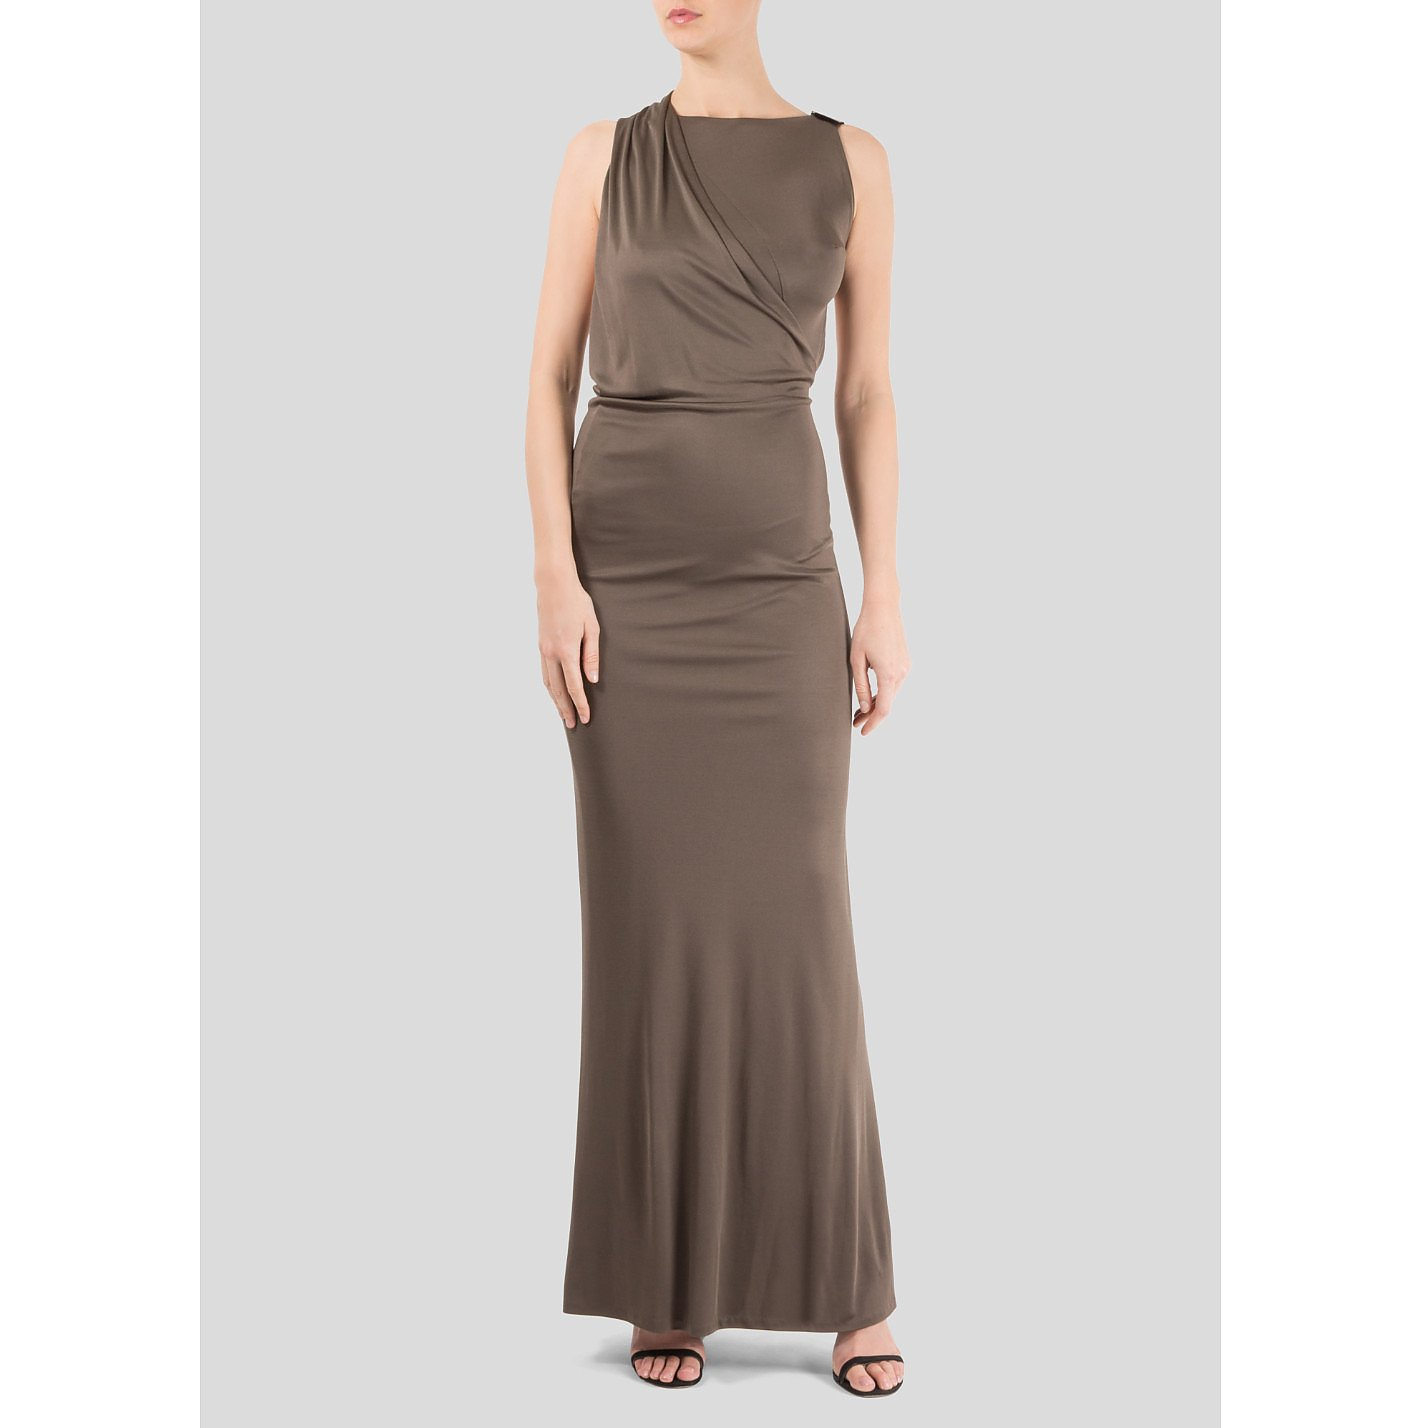 Gucci Clasp Fastening Backless Gown